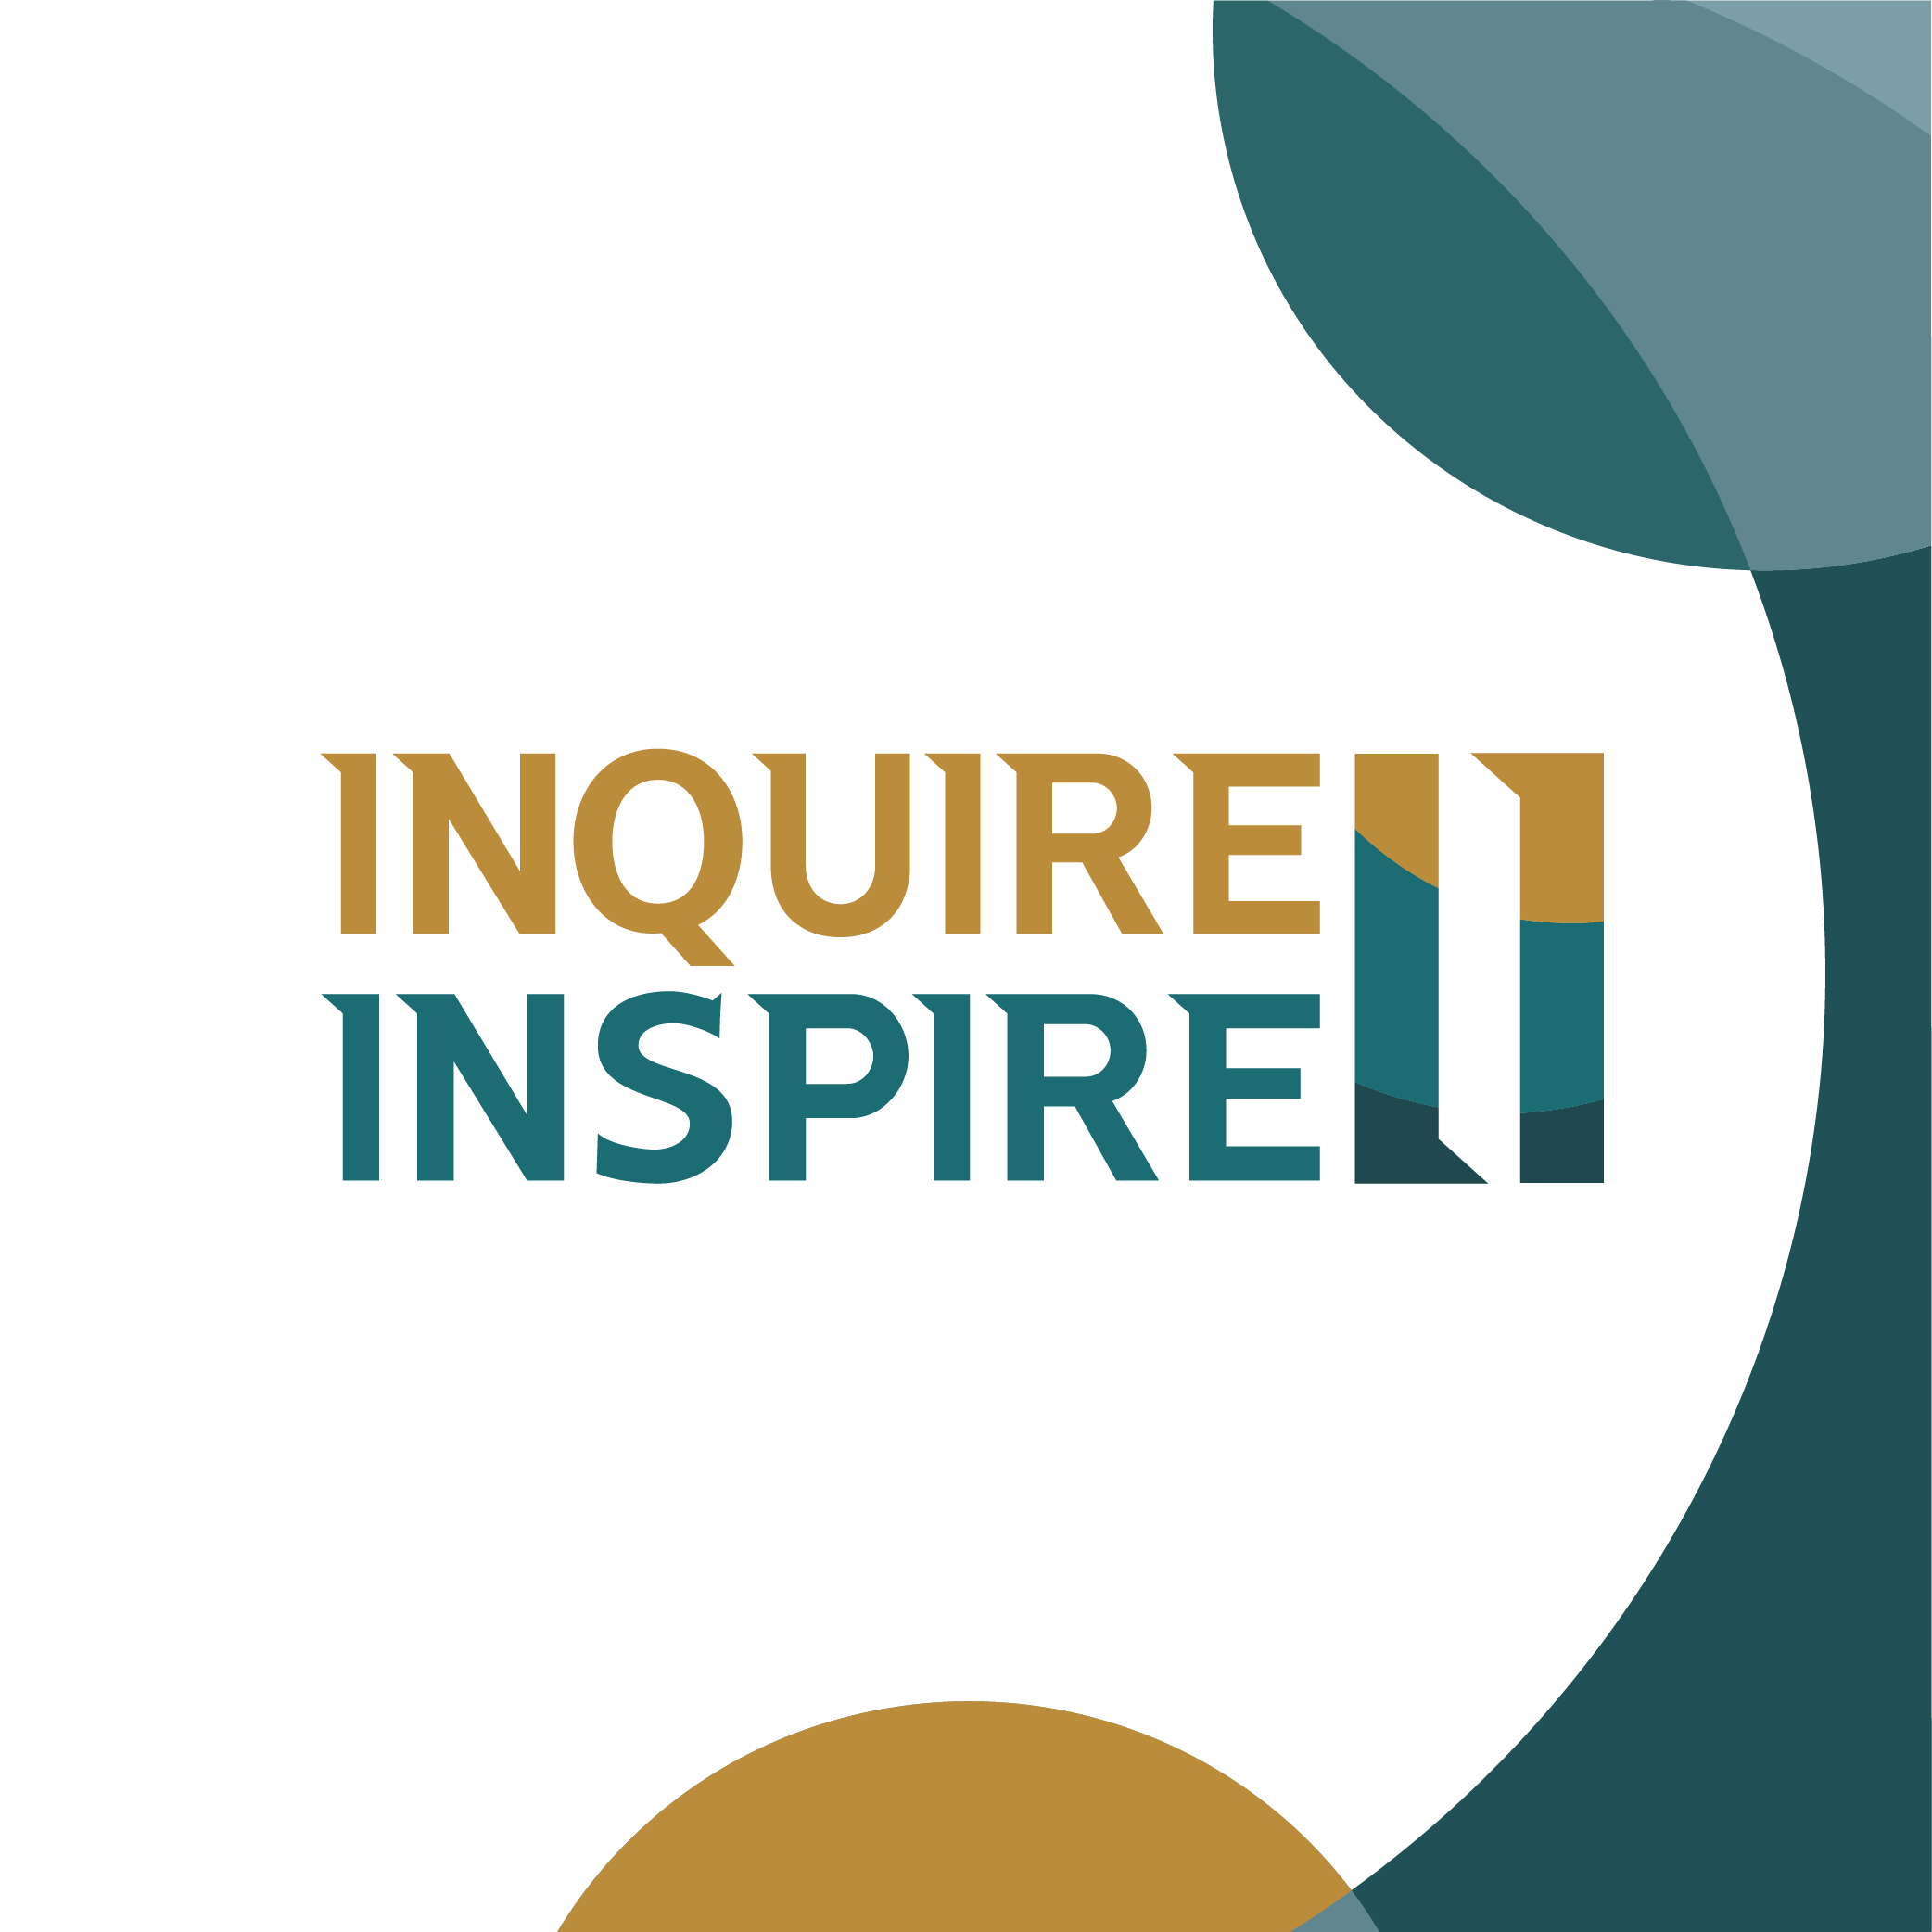 Inquire 2 Inspire Logo